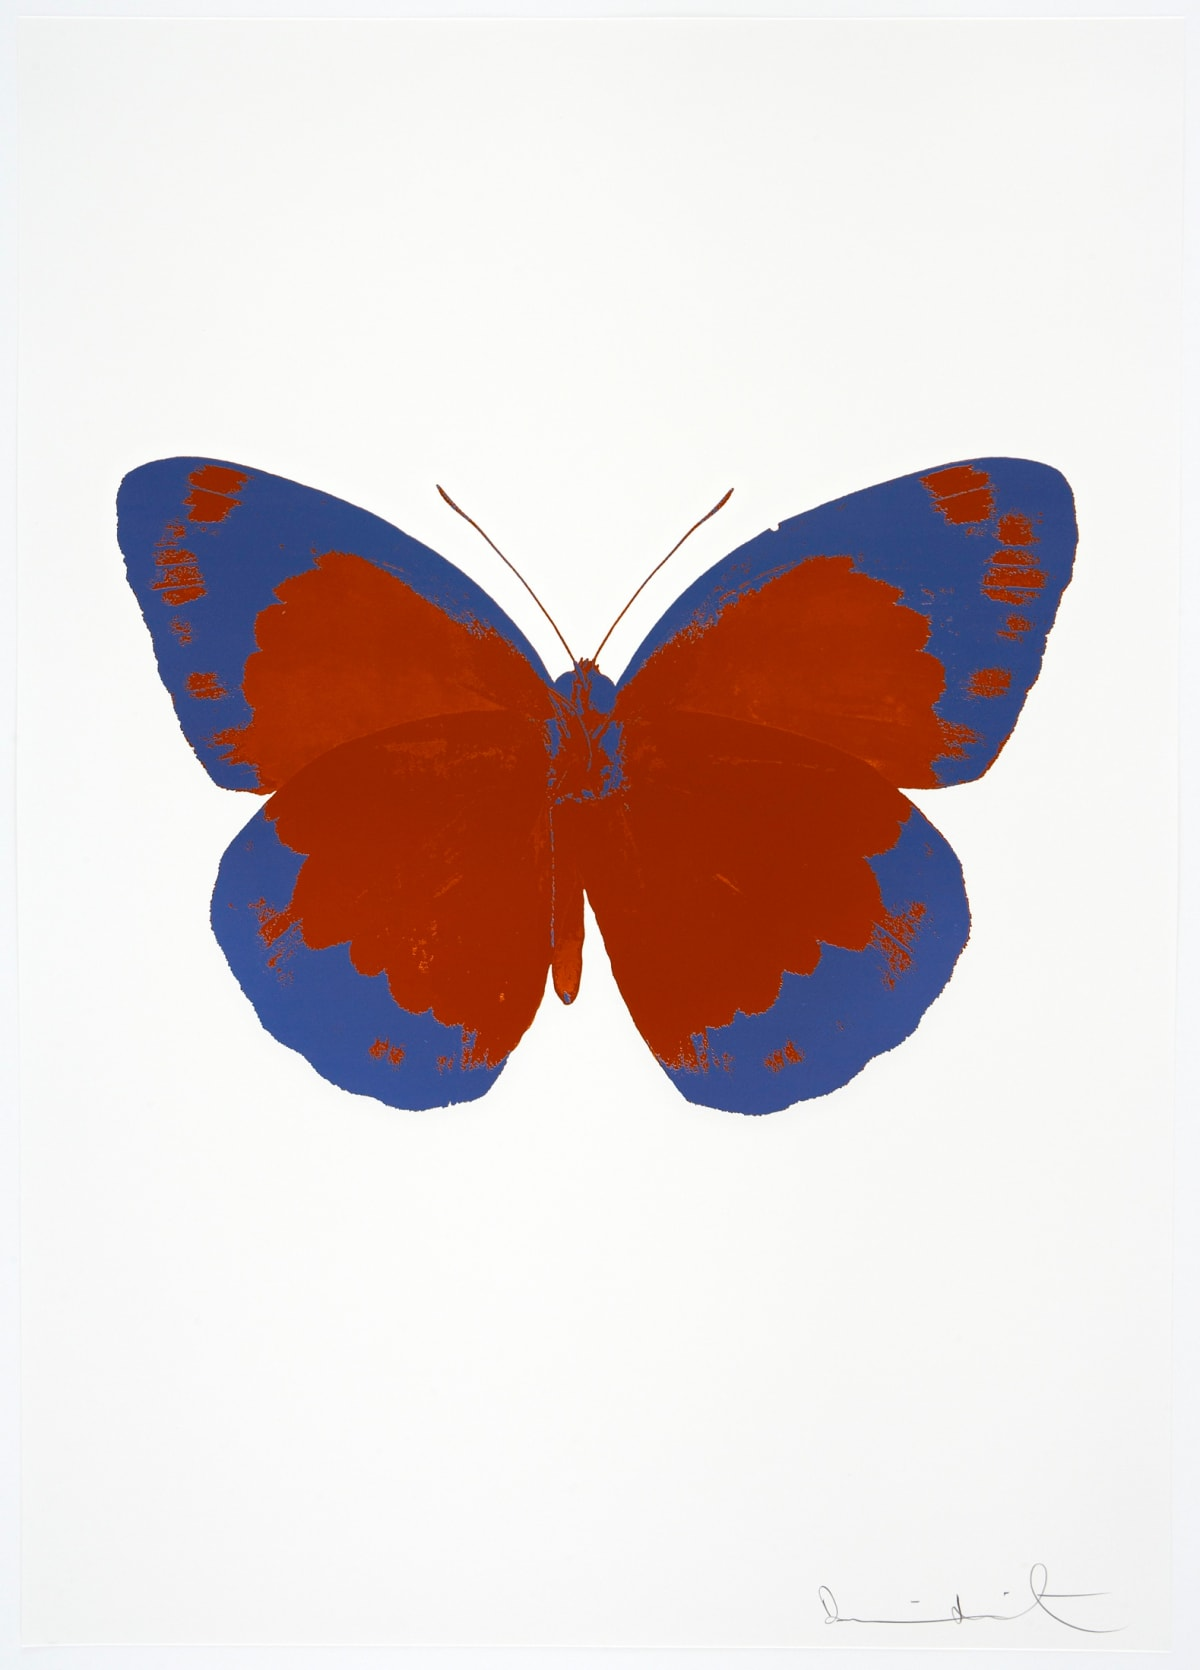 Damien Hirst The Souls II - Prairie Copper/Frost Blue/Blind Impression, 2010 2 colour foil block on 300gsm Arches 88 archival paper. Signed and numbered. Published by Paul Stolper and Other Criteria 72 x 51cm OC7891 / 658-74 Edition of 15